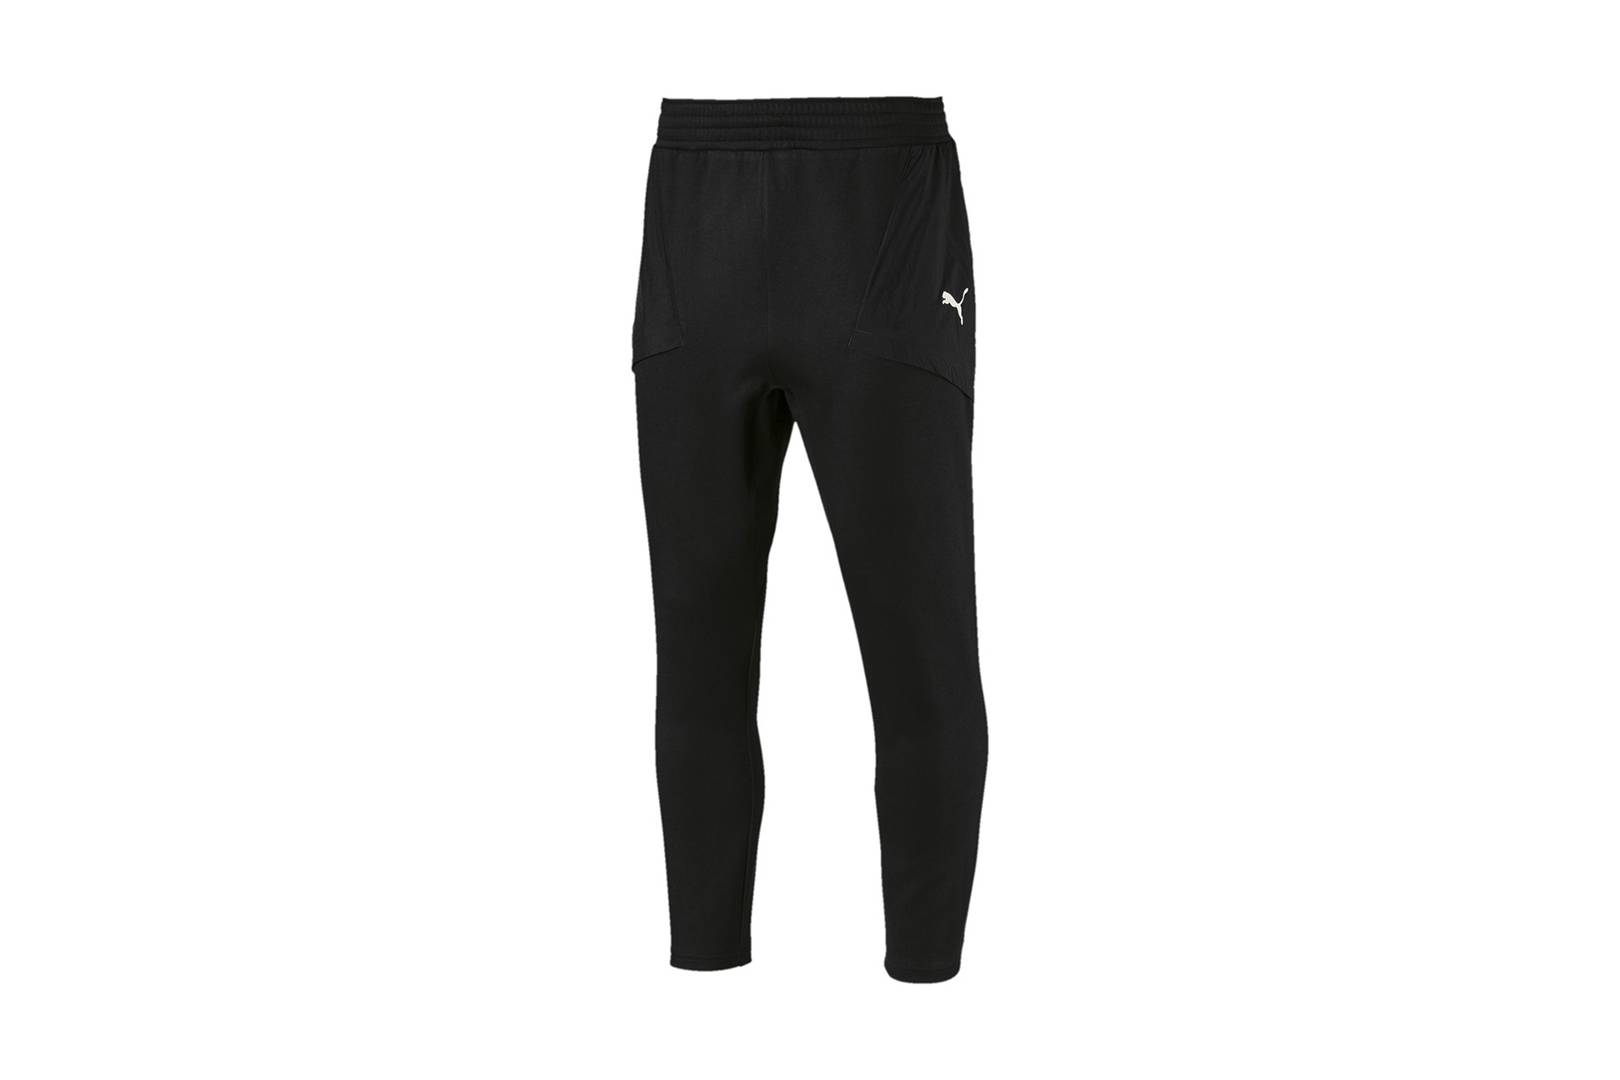 3f558f53b3631 Gym clothes for men: the ultimate kit   British GQ